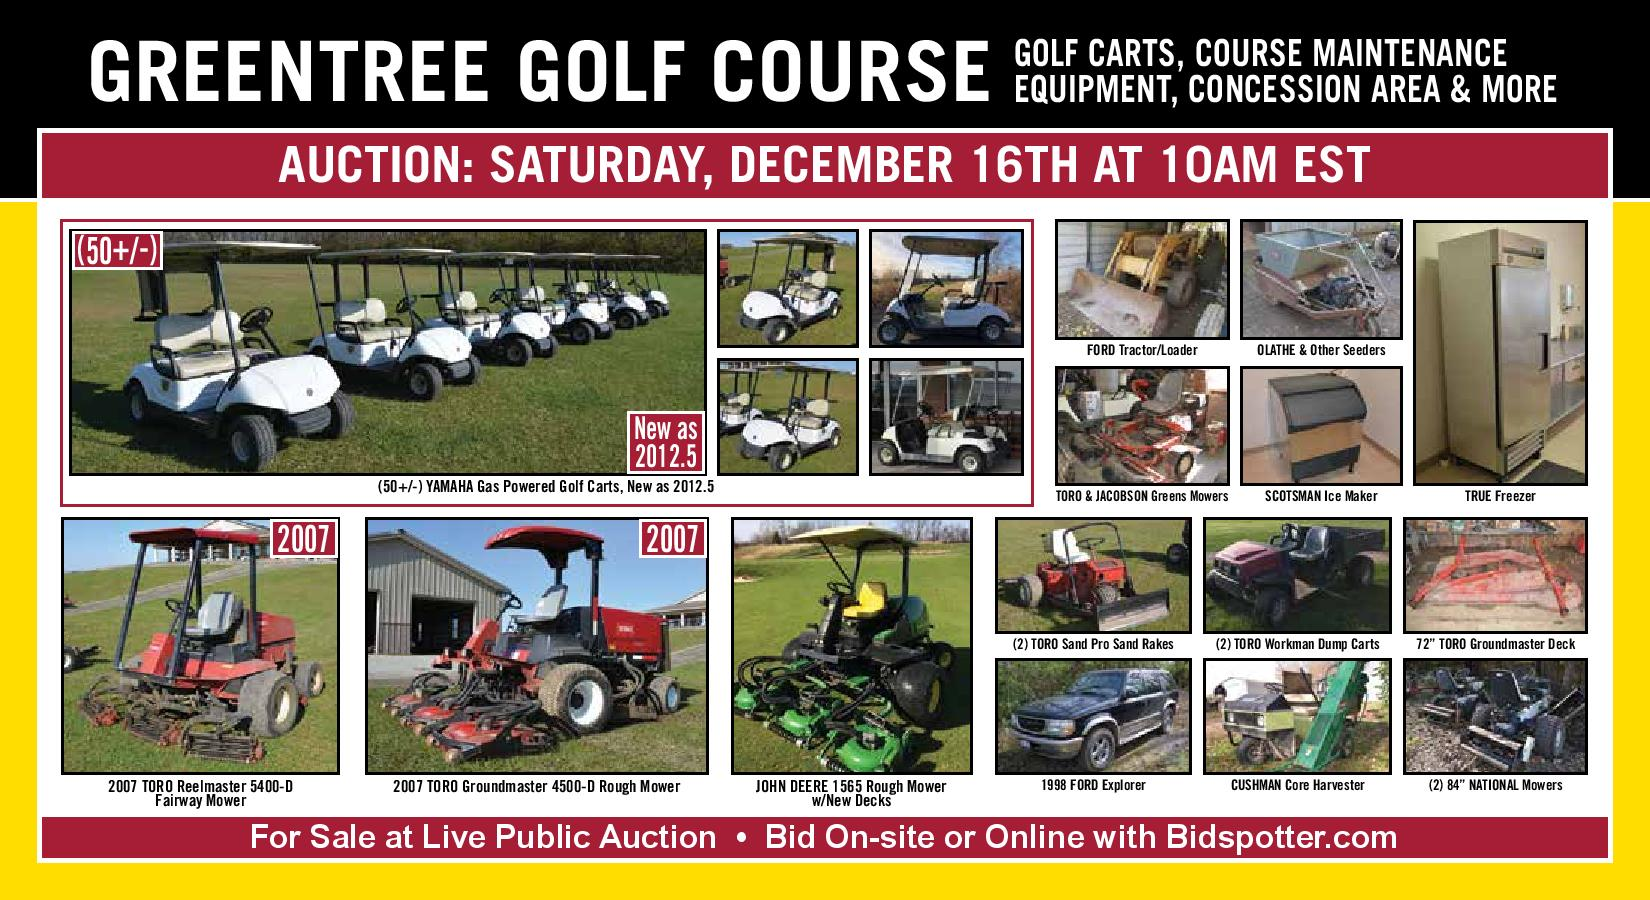 Lot 0 - FULL CATALOG COMING SOON. REGISTER TODAY!